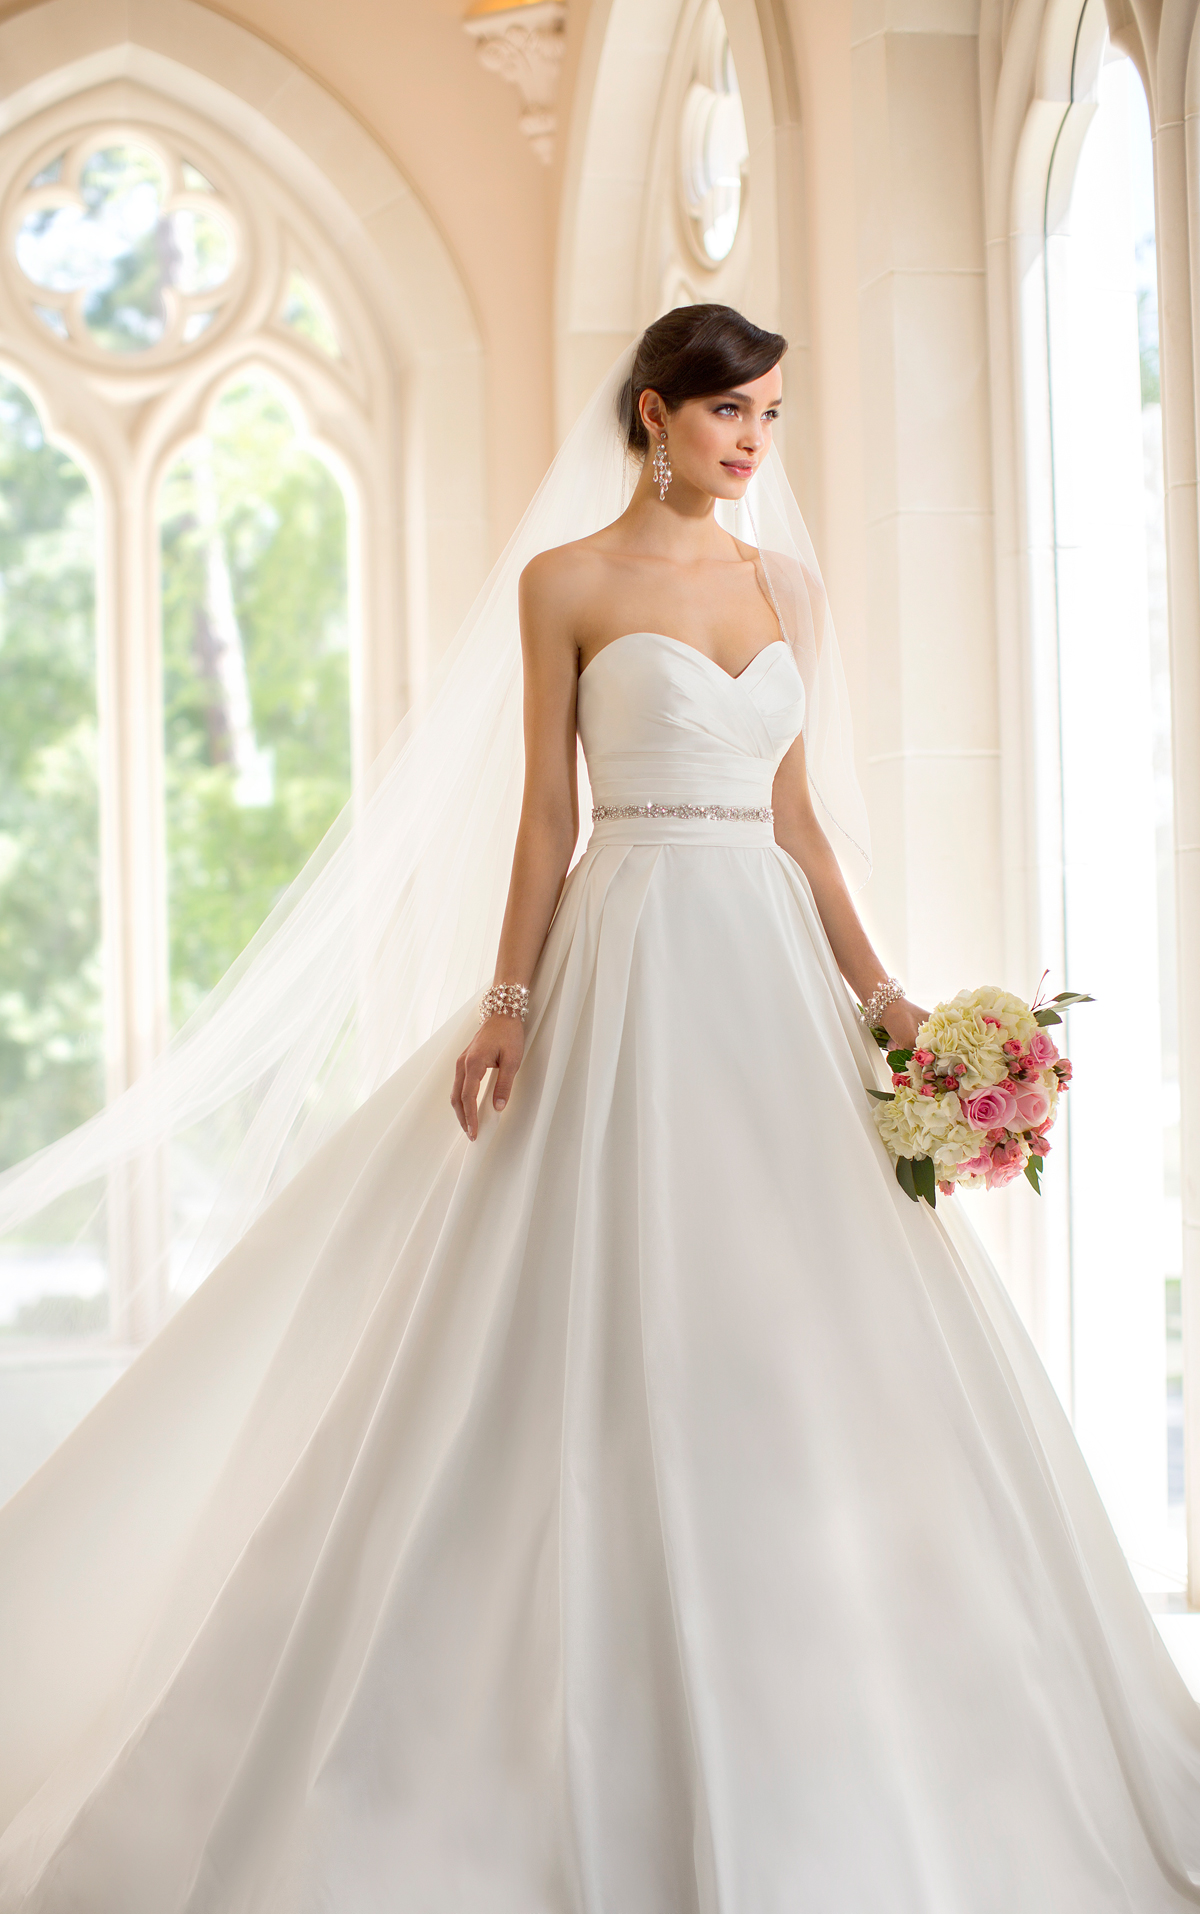 stella-york-wedding-dresses-2014-13-01162014